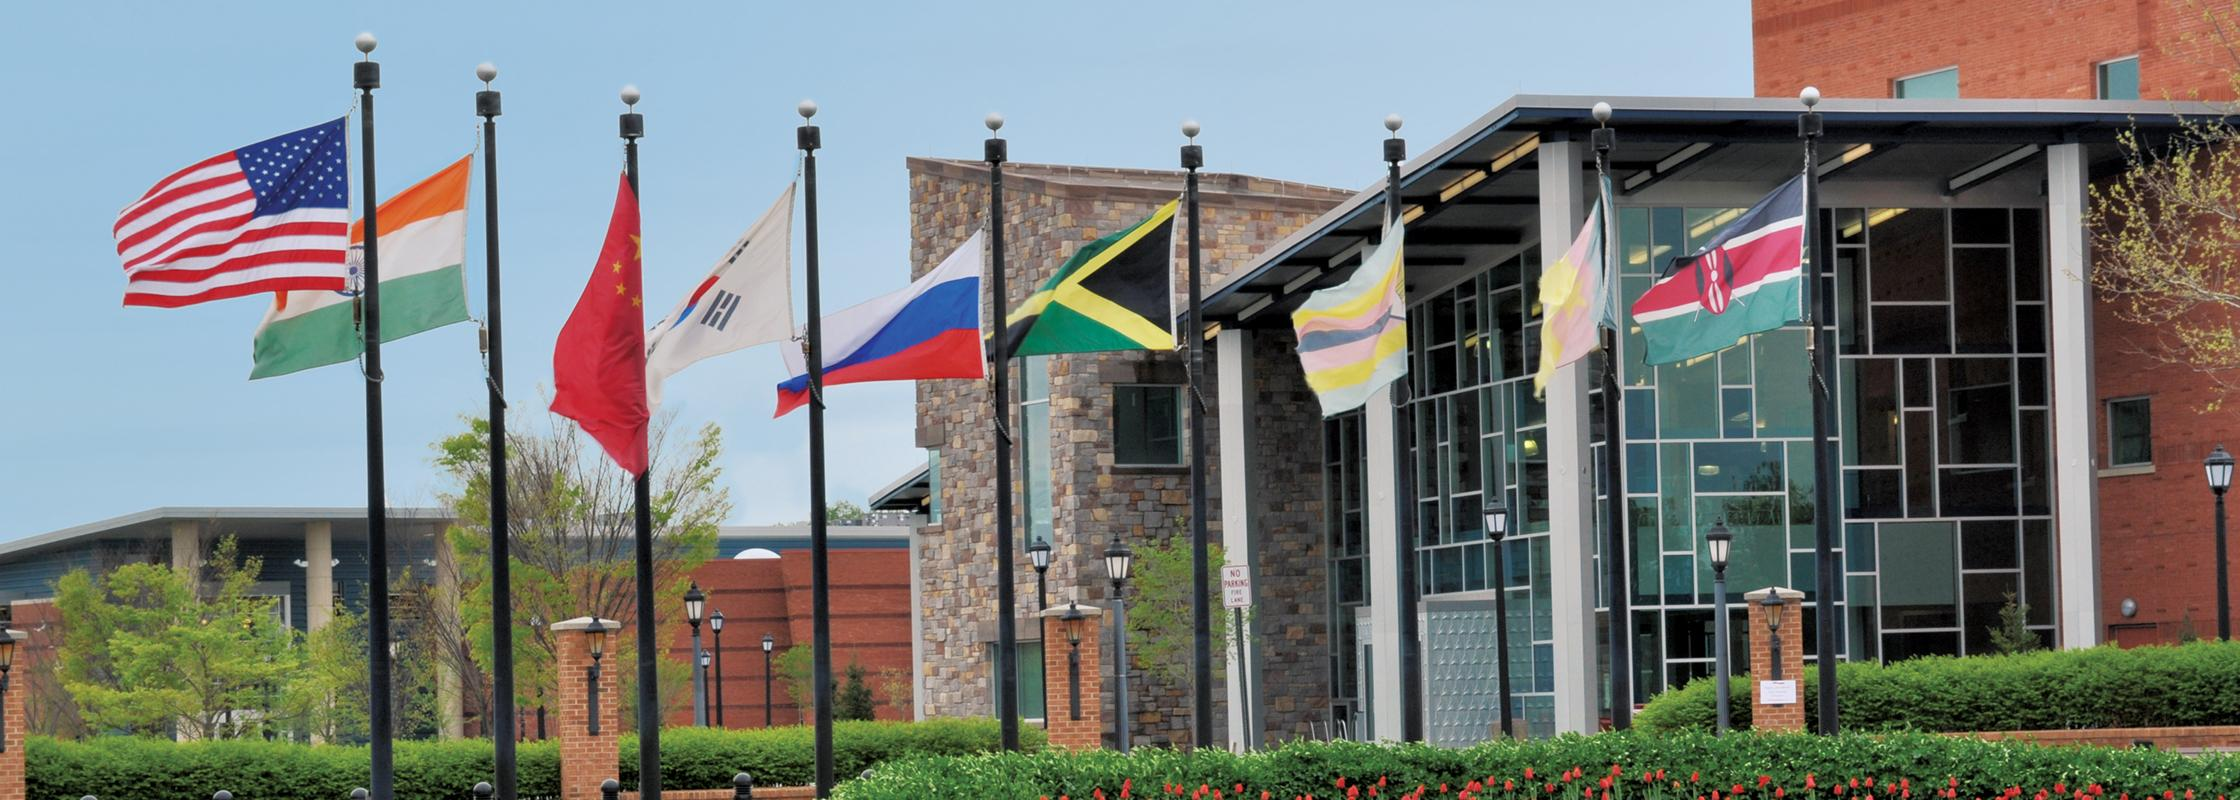 International flags at DSU entrance